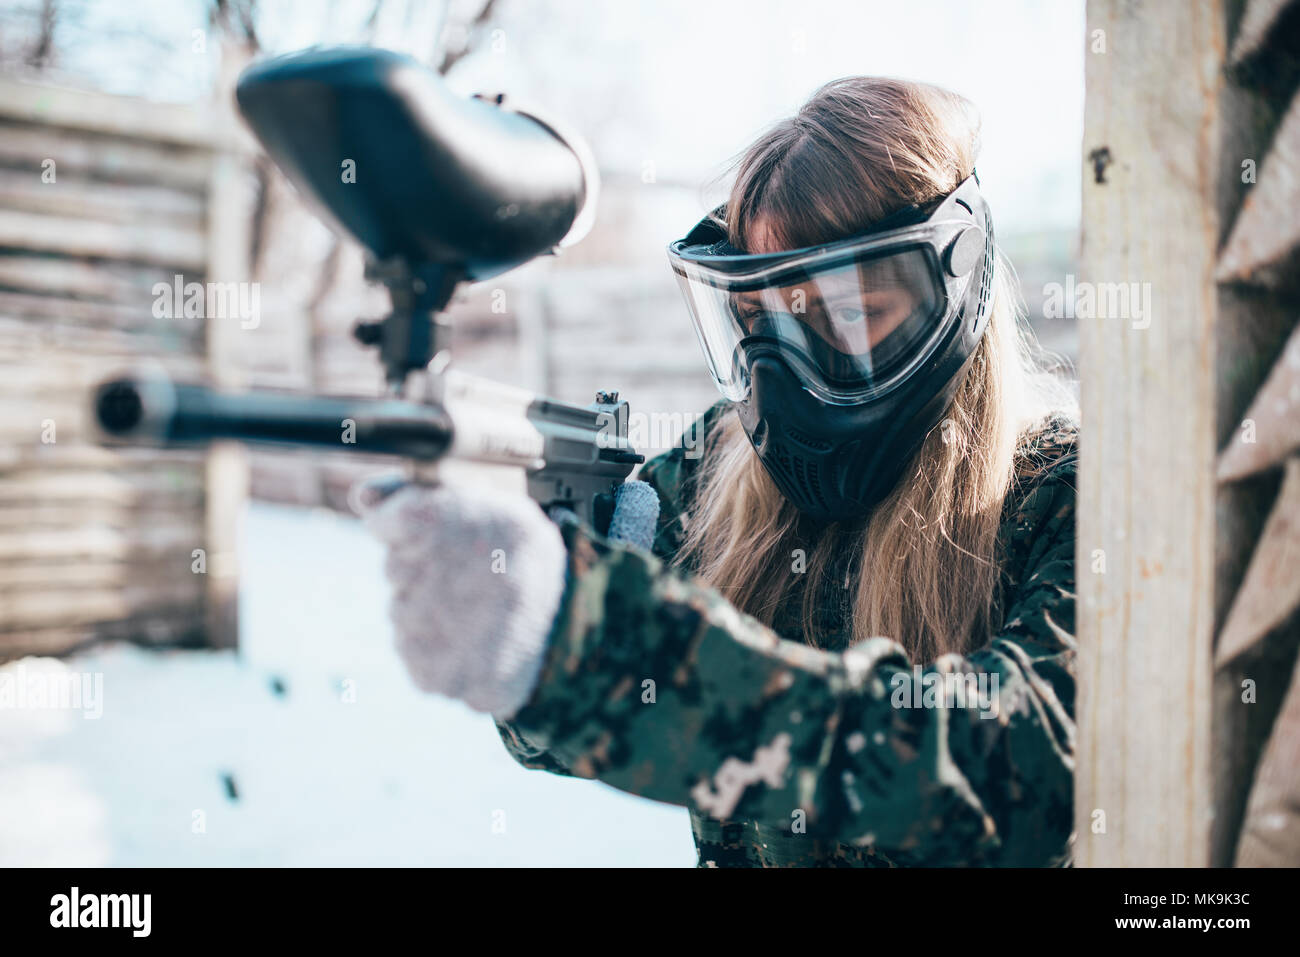 Female paintball player with marker gun in hands, winter forest battle. Extreme sport game, woman fights in protection mask and uniform Stock Photo